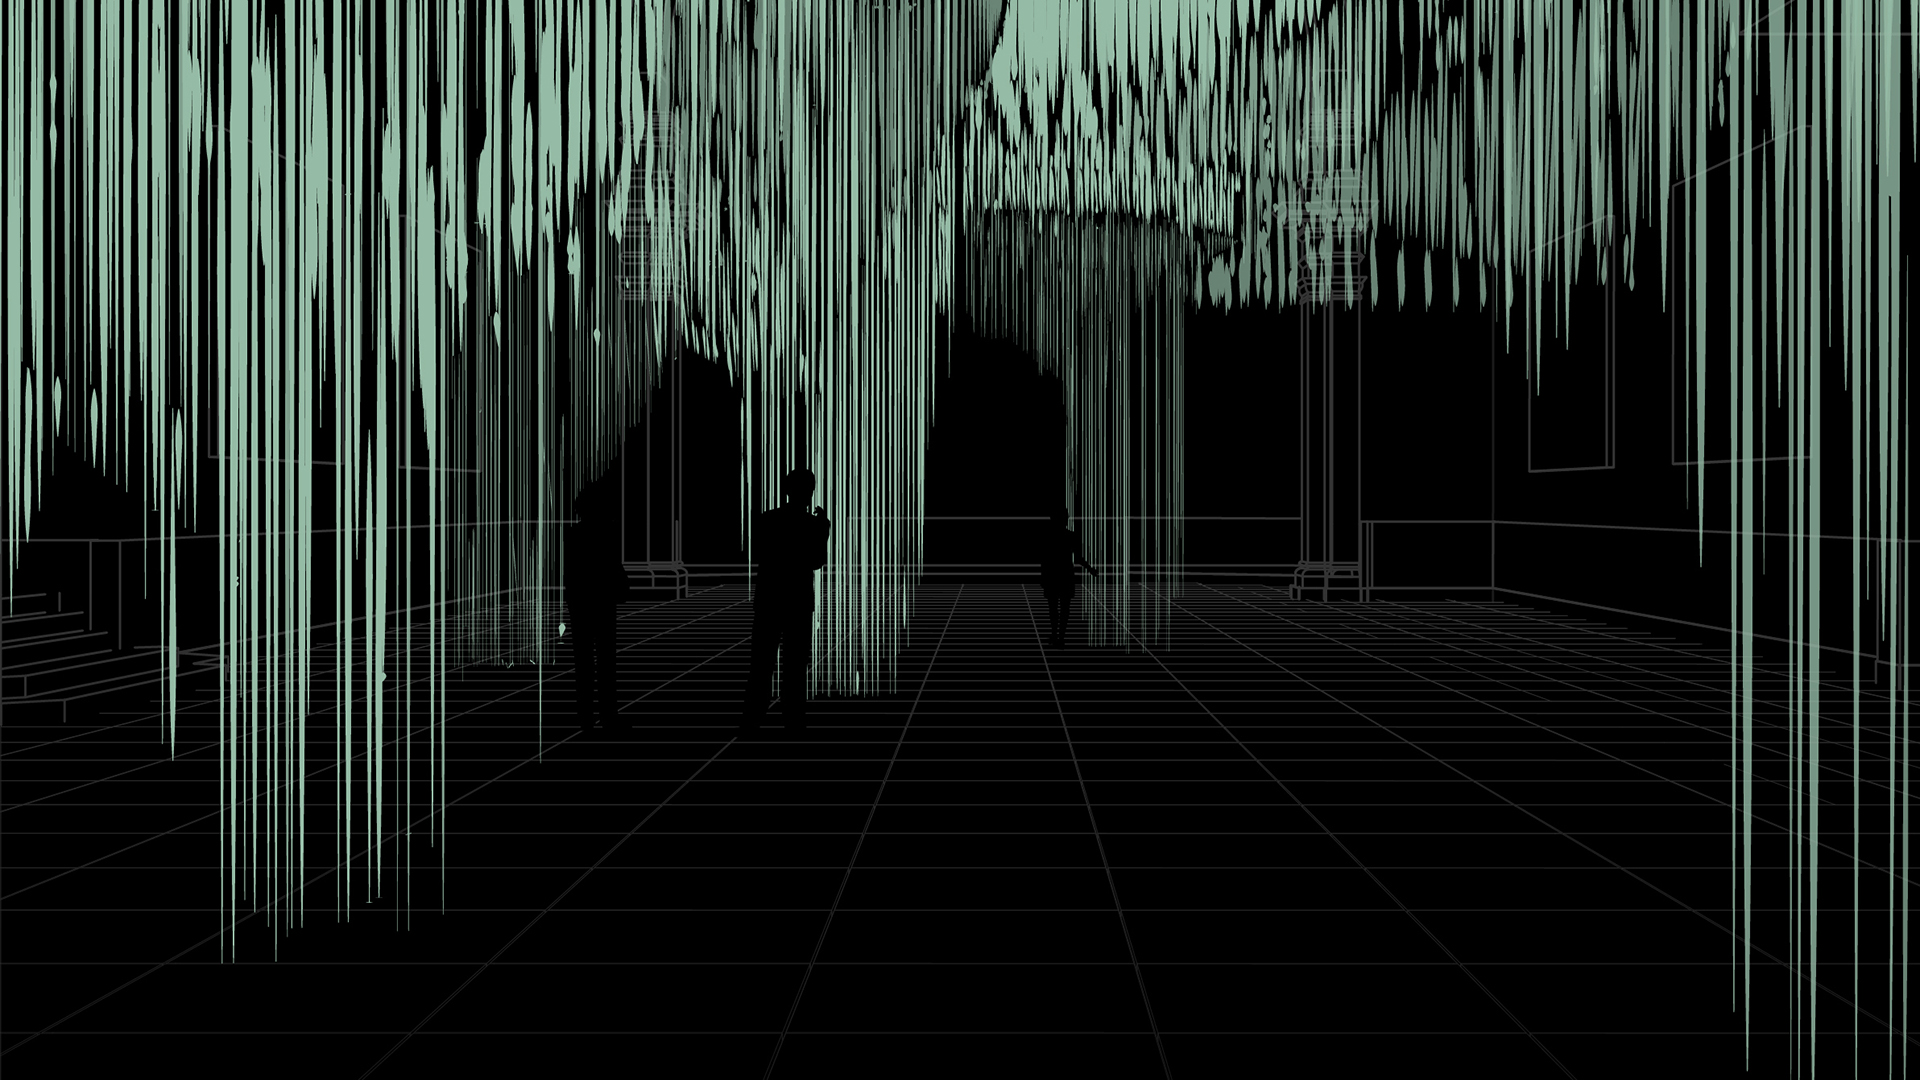 Architecture + Reality by Sou Fujimoto and Tin Drum